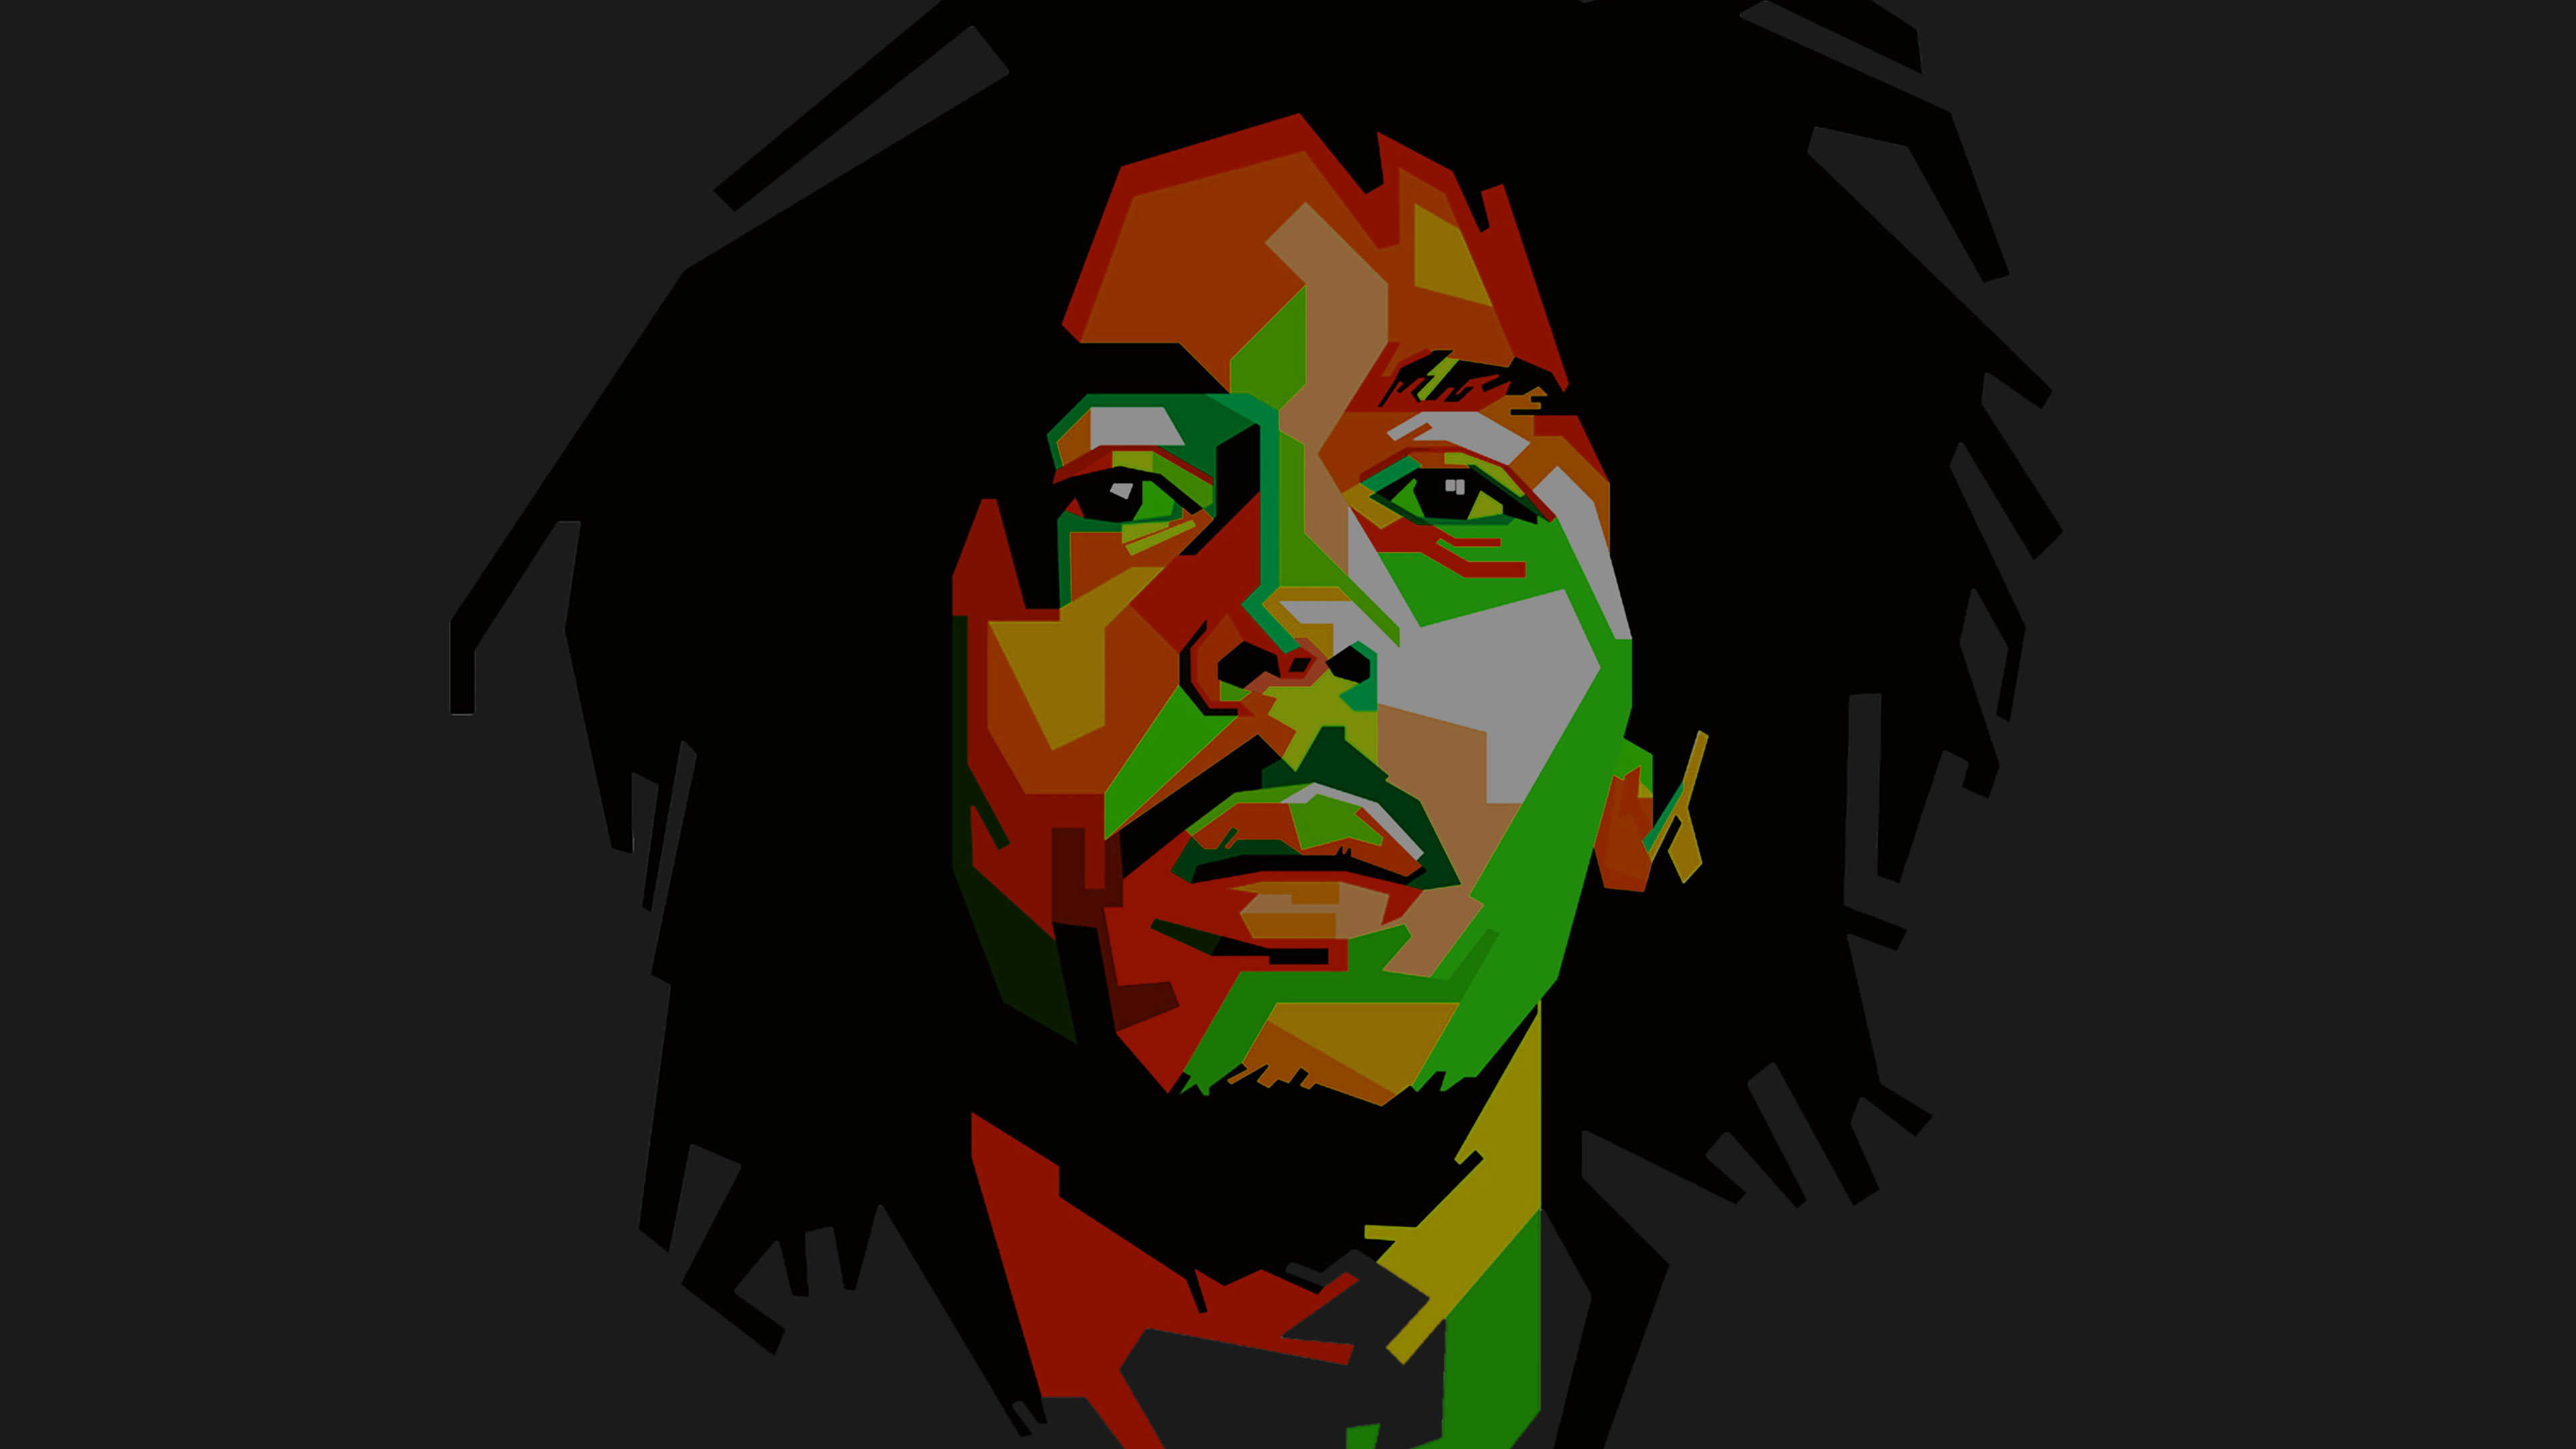 this is reggae music essay Webster dictionary defines music as the problems not the problem my favorite type of music – english essay jazz, classical, blues, r&b, reggae.